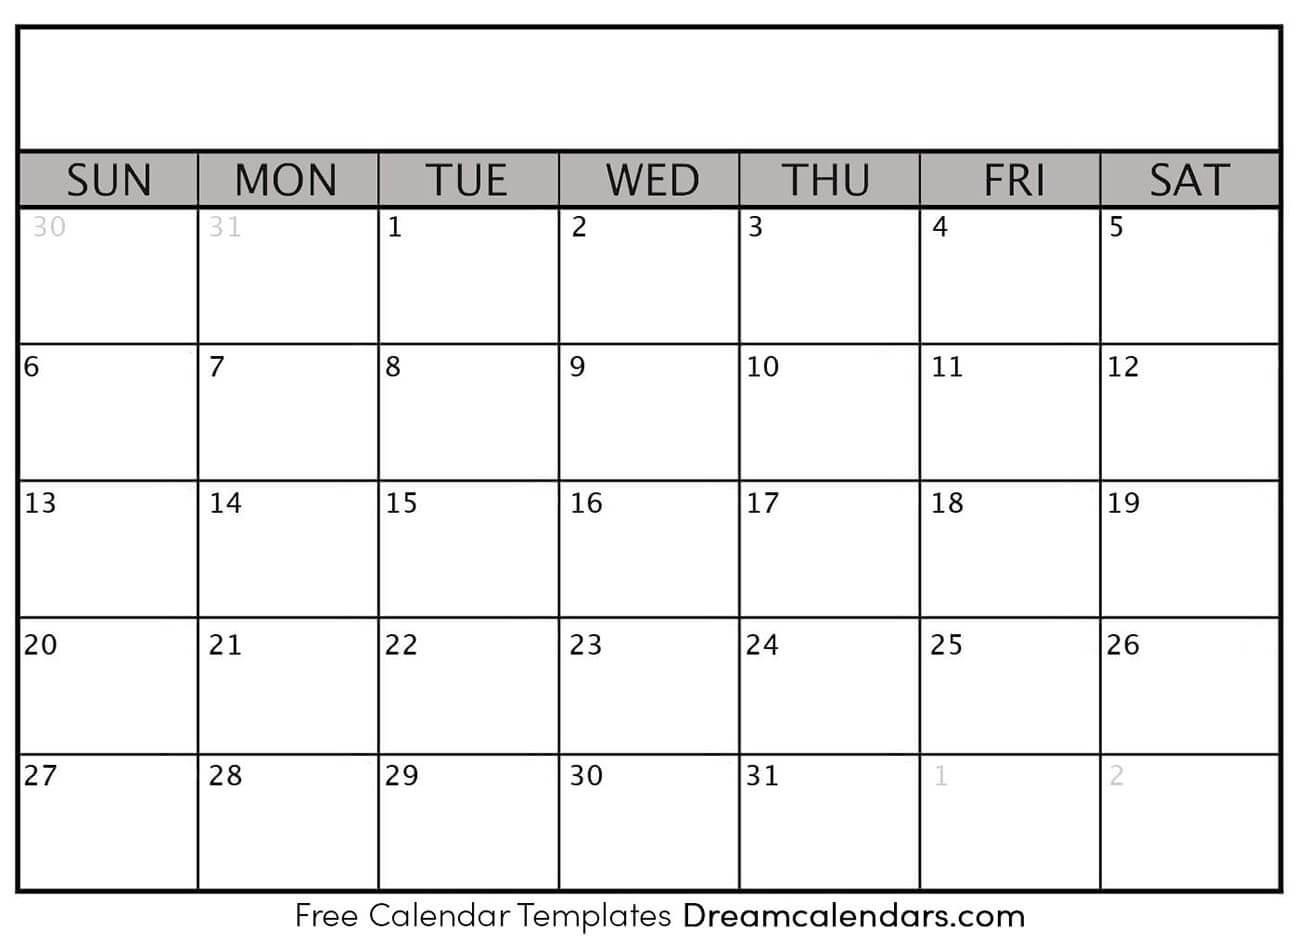 Printable Blank Calendar 2020 | Dream Calendars  Free Printable Editable Calendars 2020